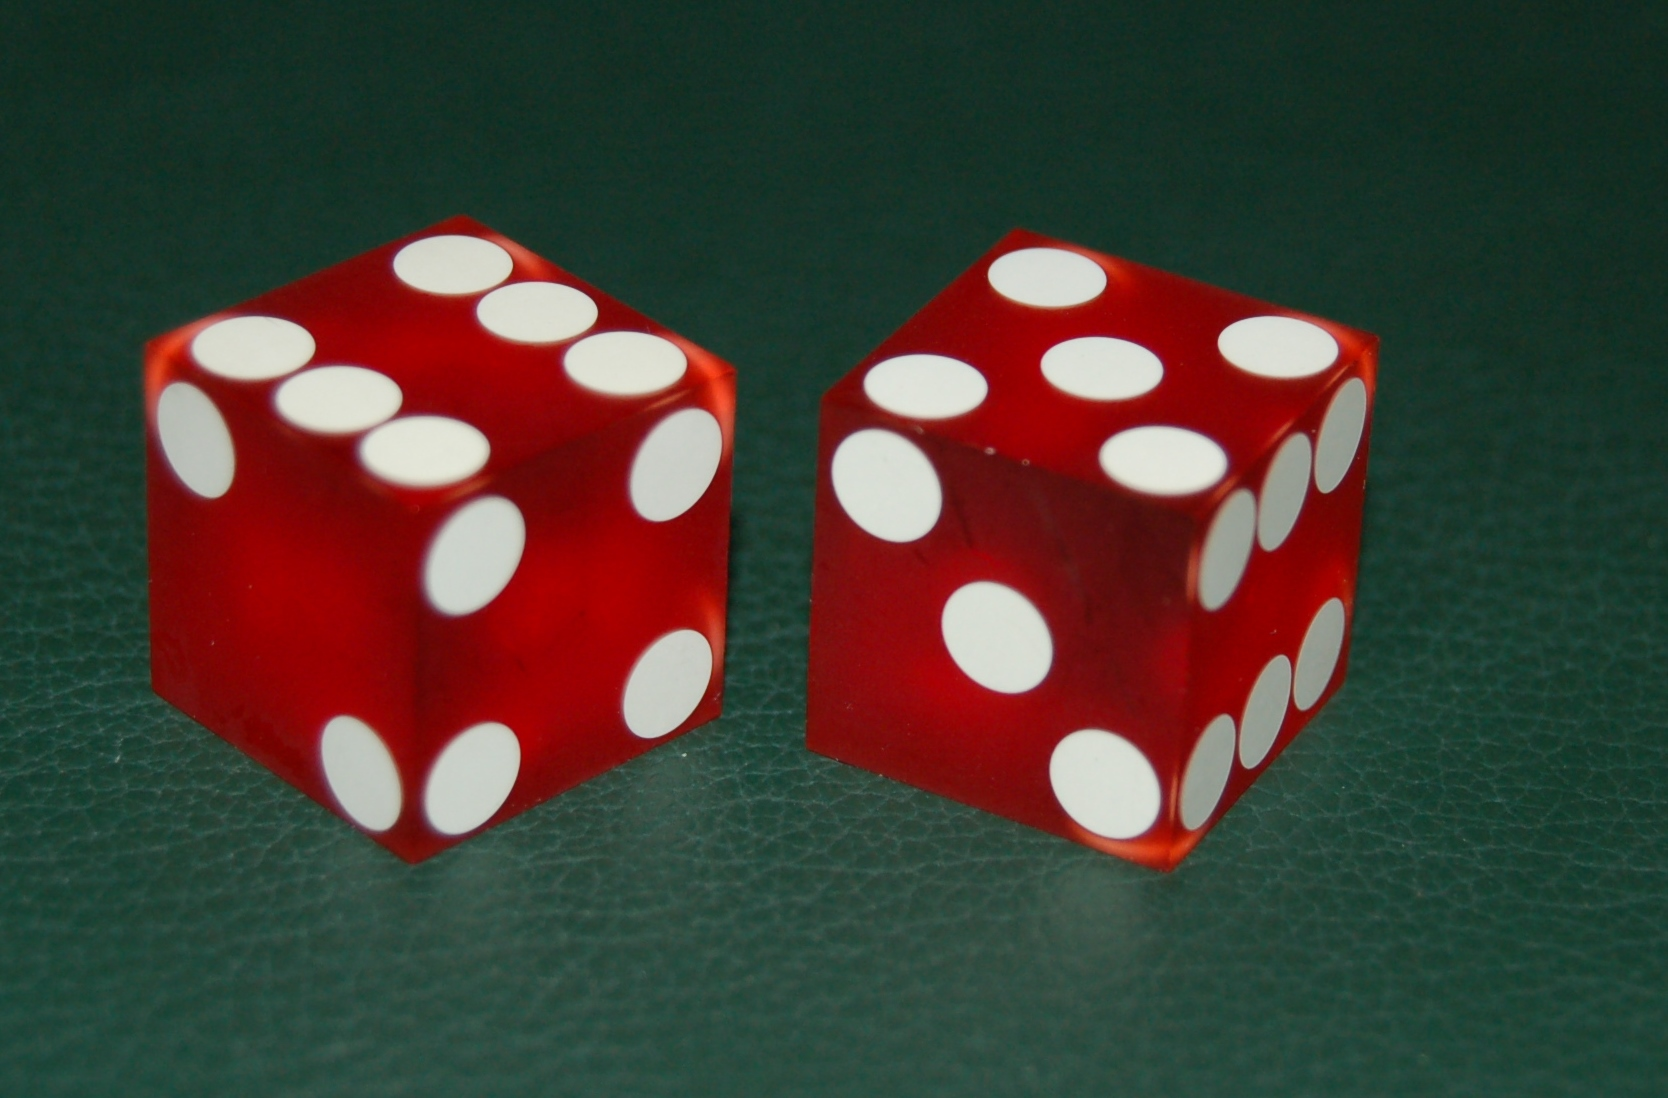 How to roll the dice in craps